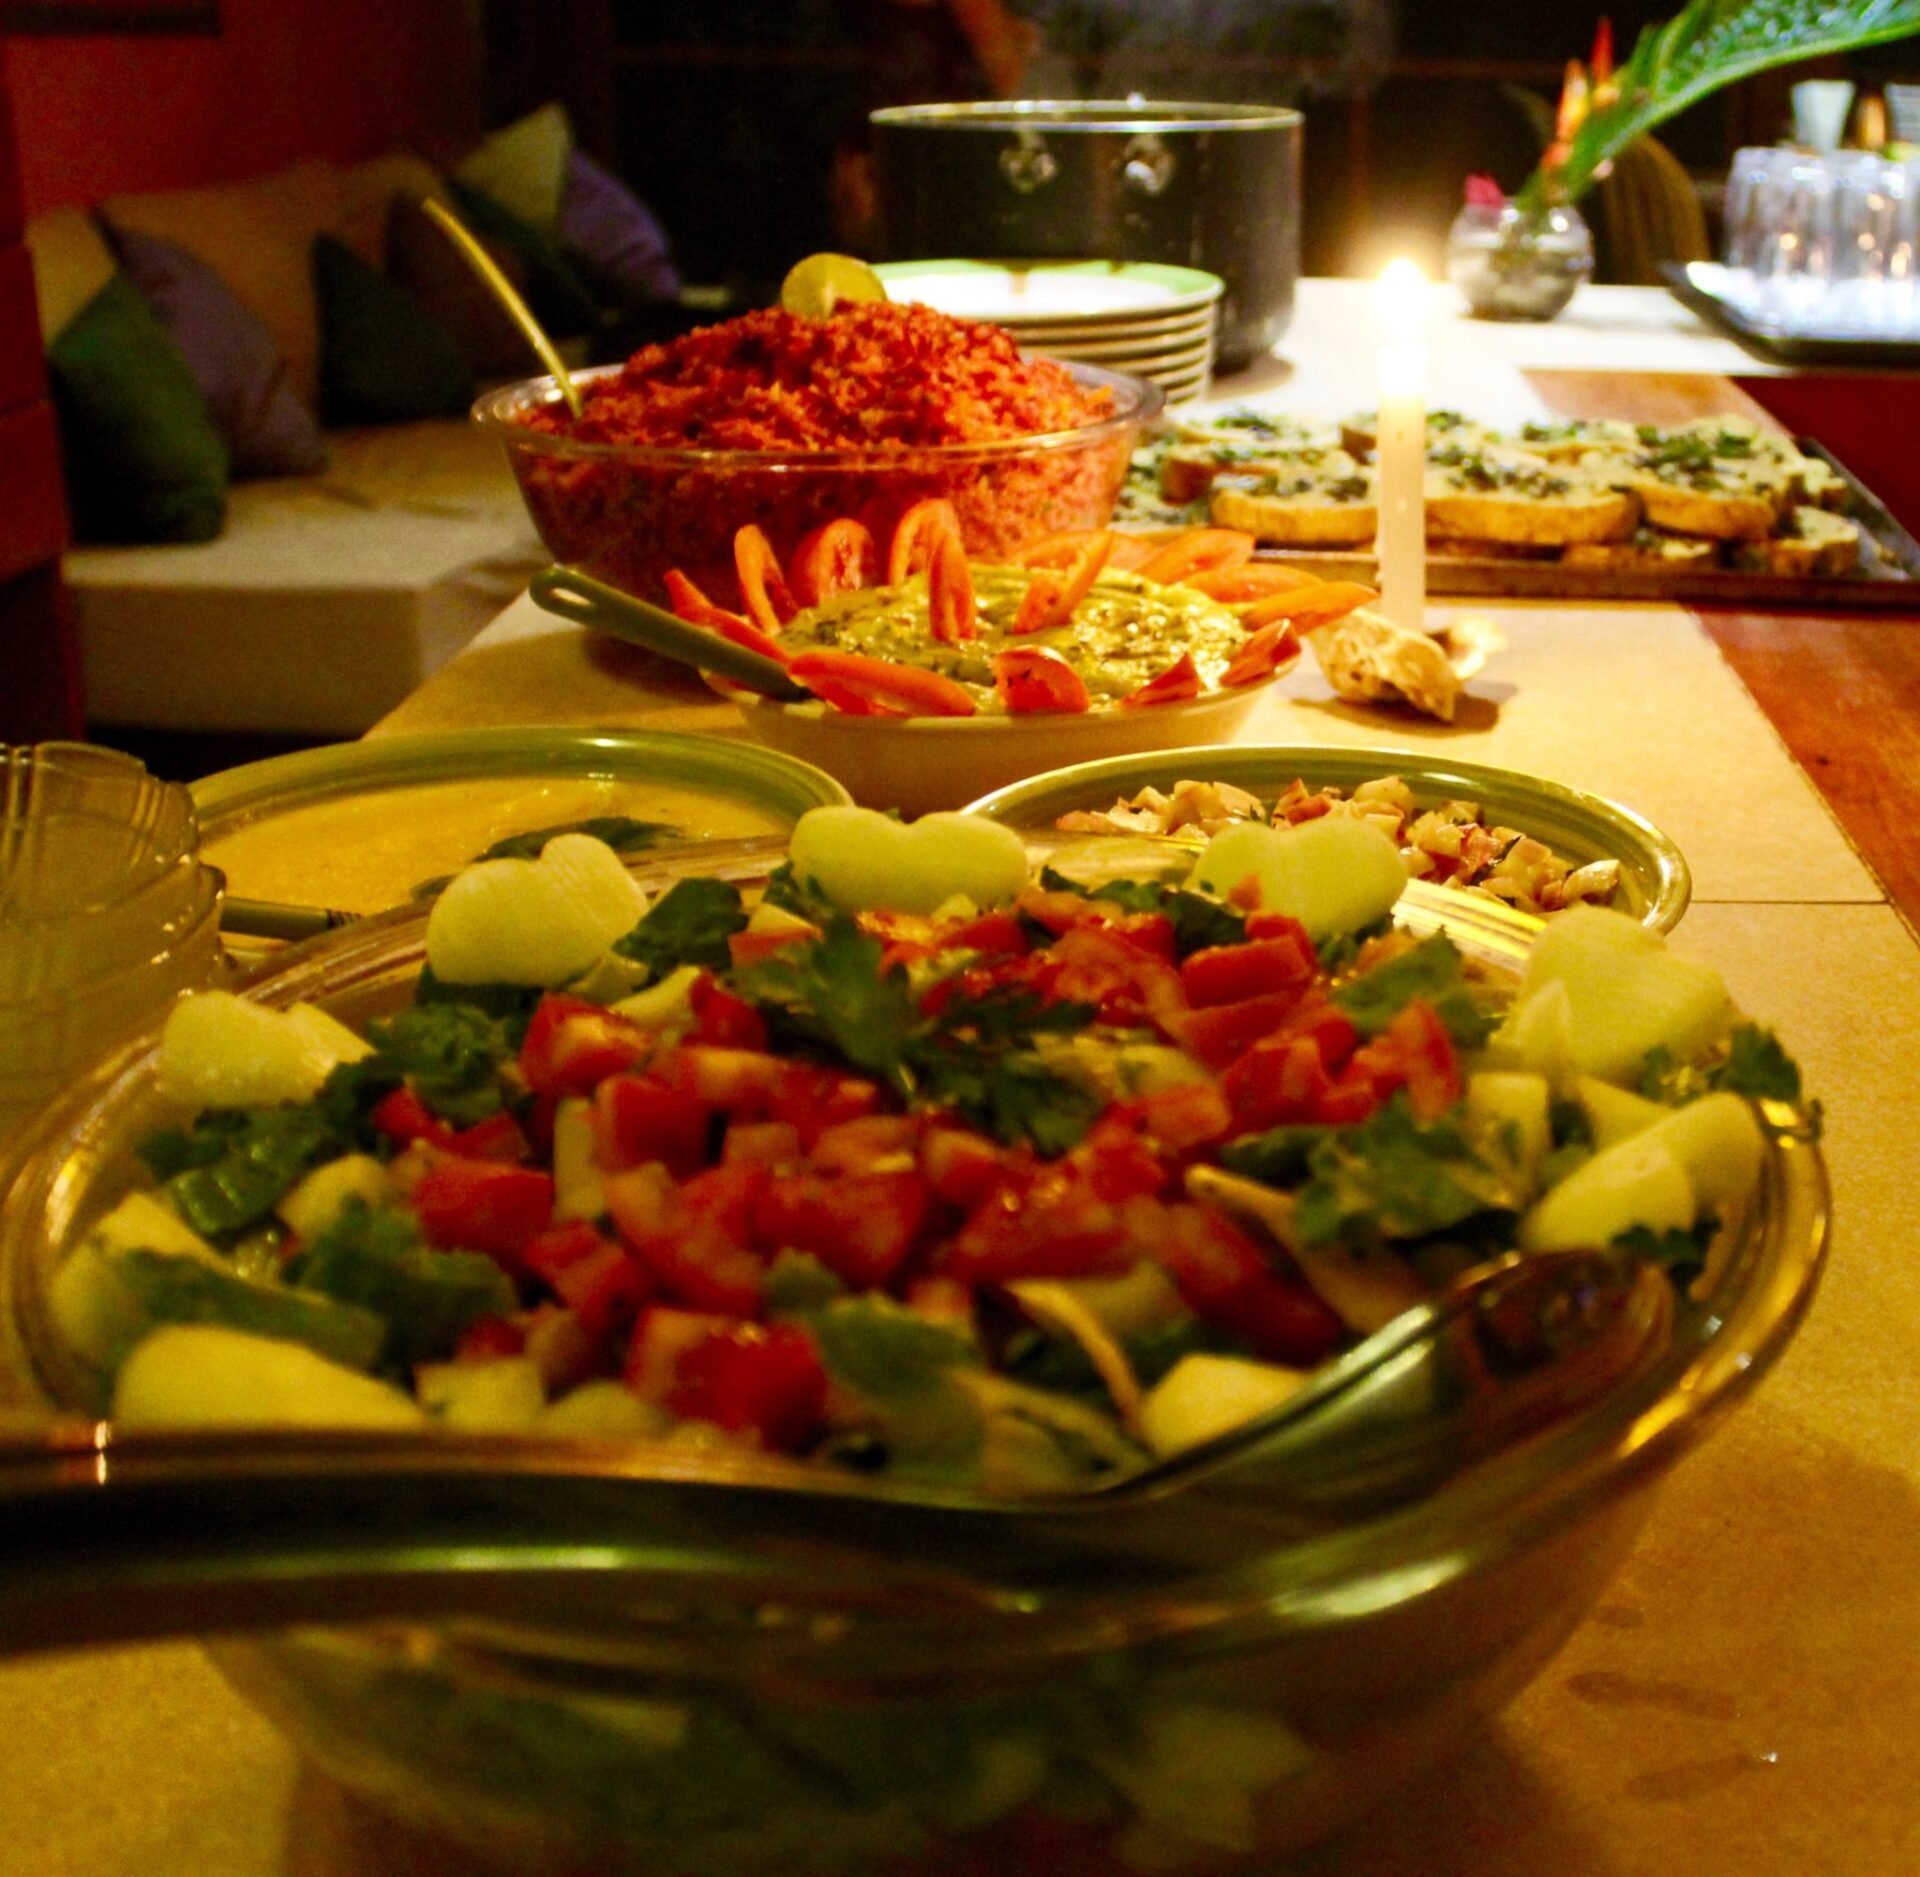 Delicious Ayahuasca diet food